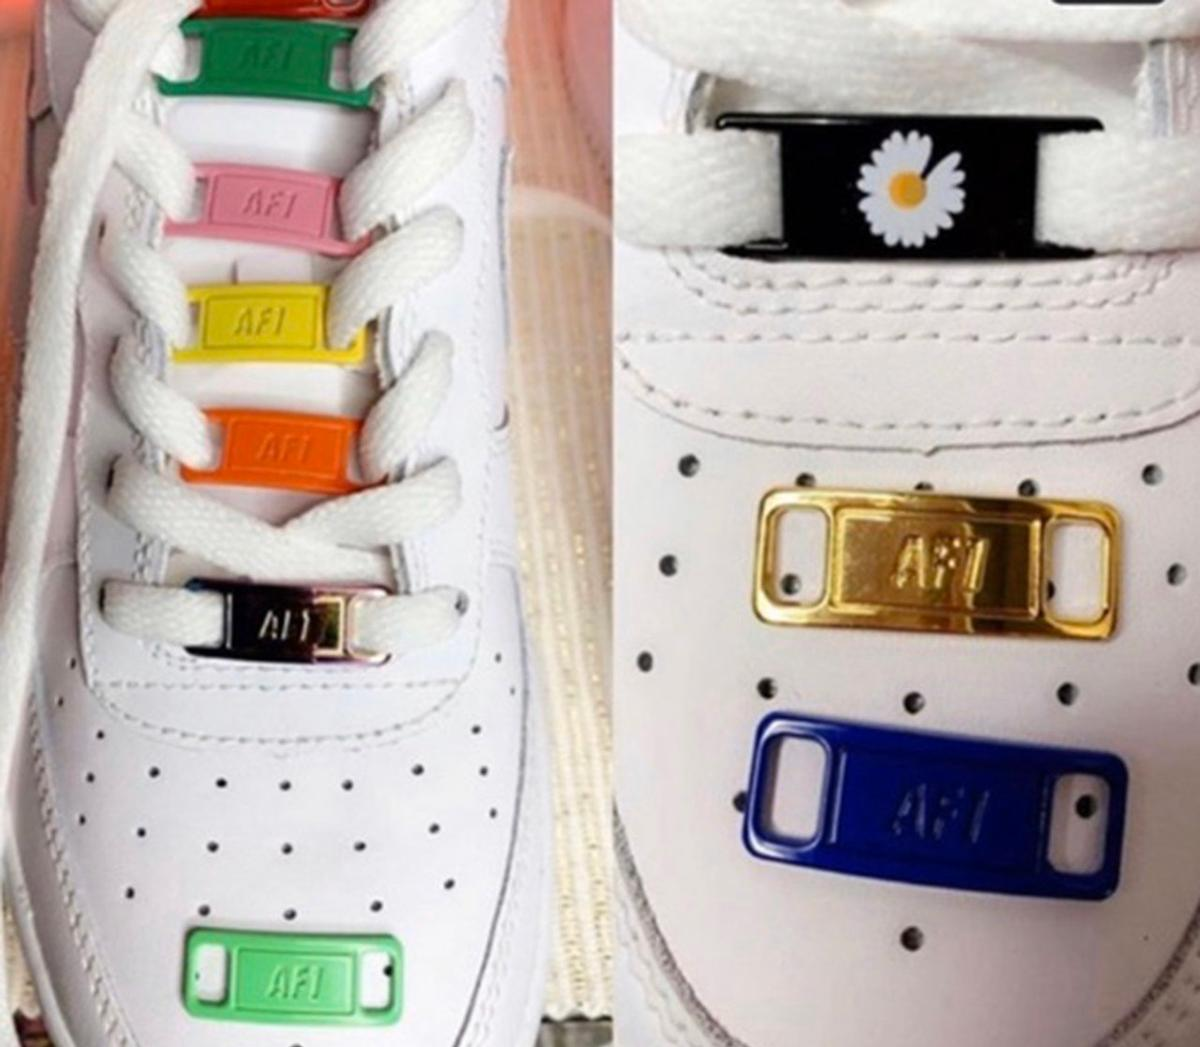 af1 lace lock replacement Promotions